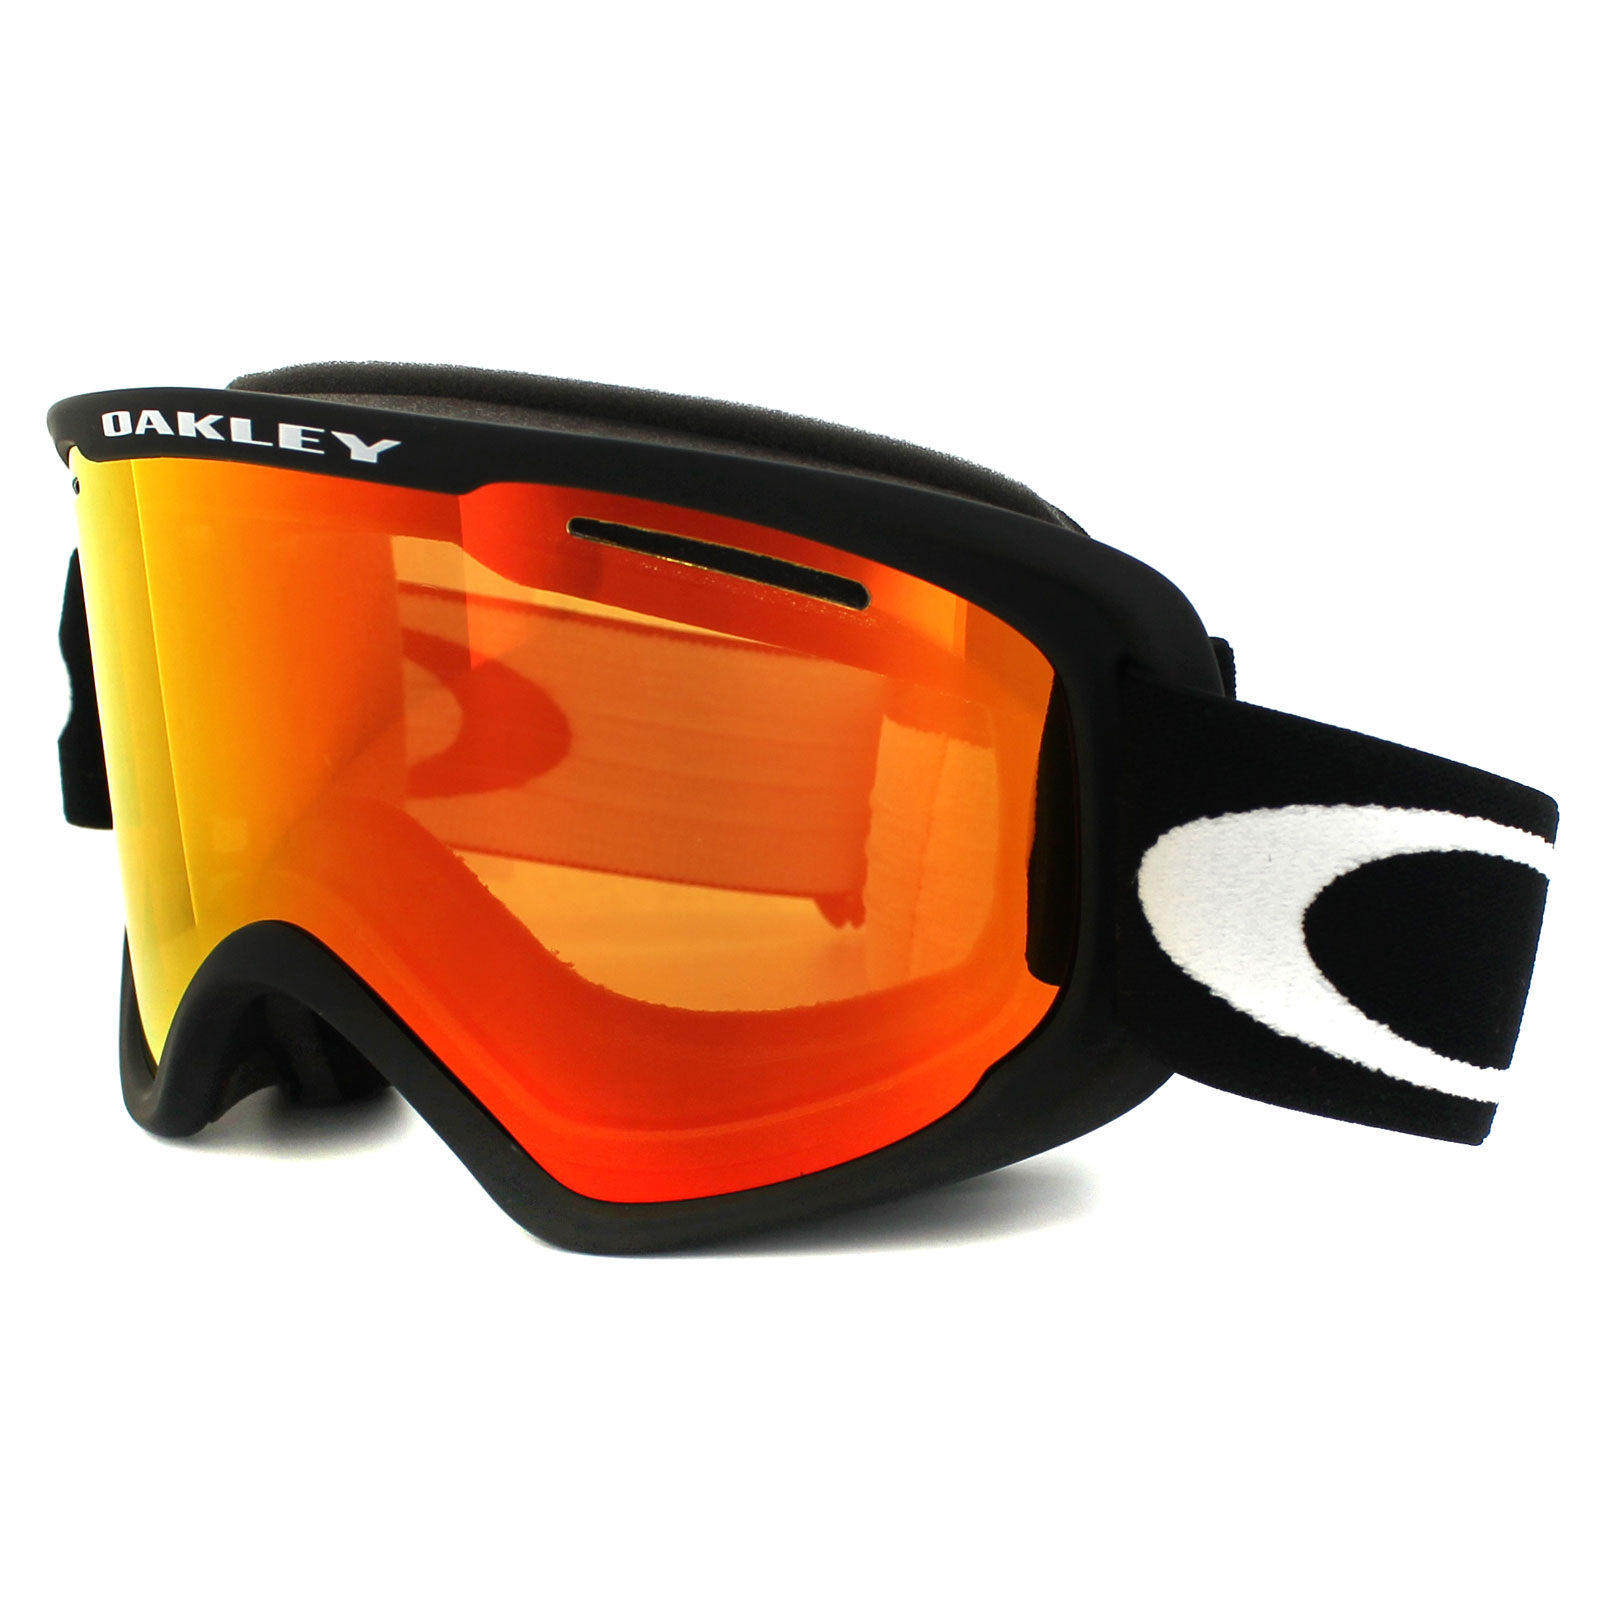 new oakley goggles  Oakley Ski Snow Goggles 02 XM OO7066-01 Matt Black Fire Iridium